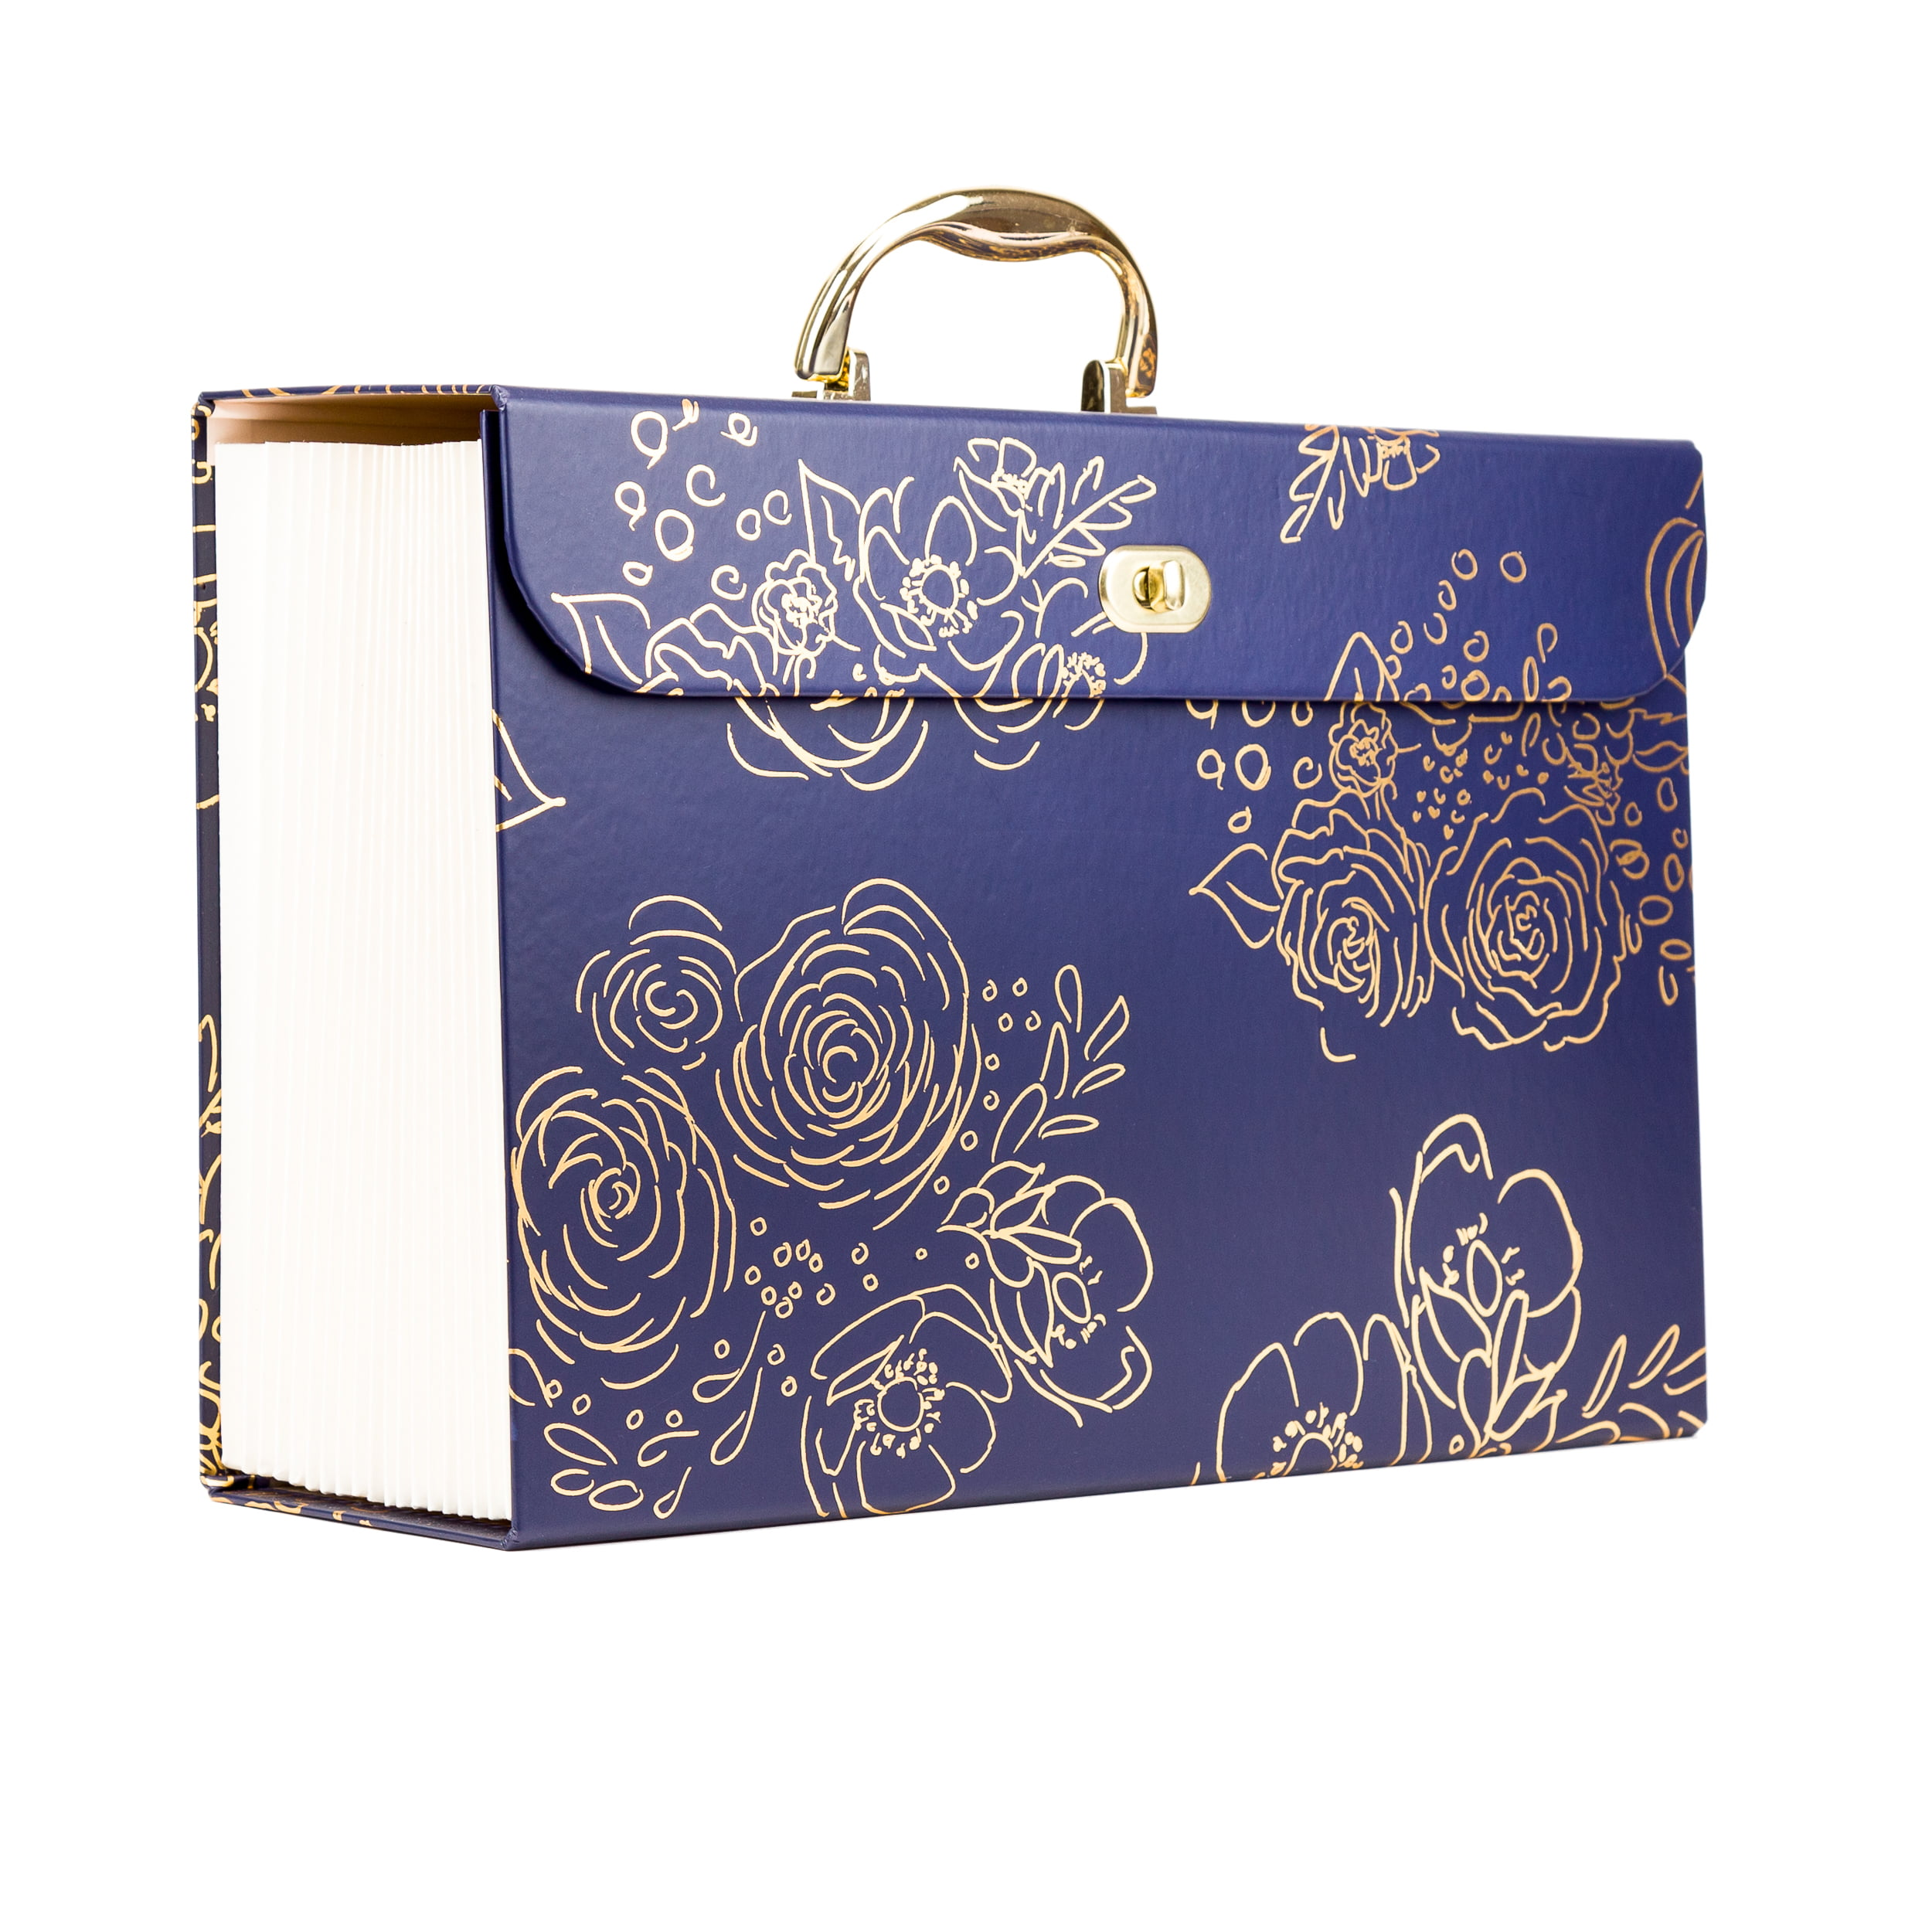 U Brands 19 Pocket Expandable File Folder, Gold Floral Print, Navy